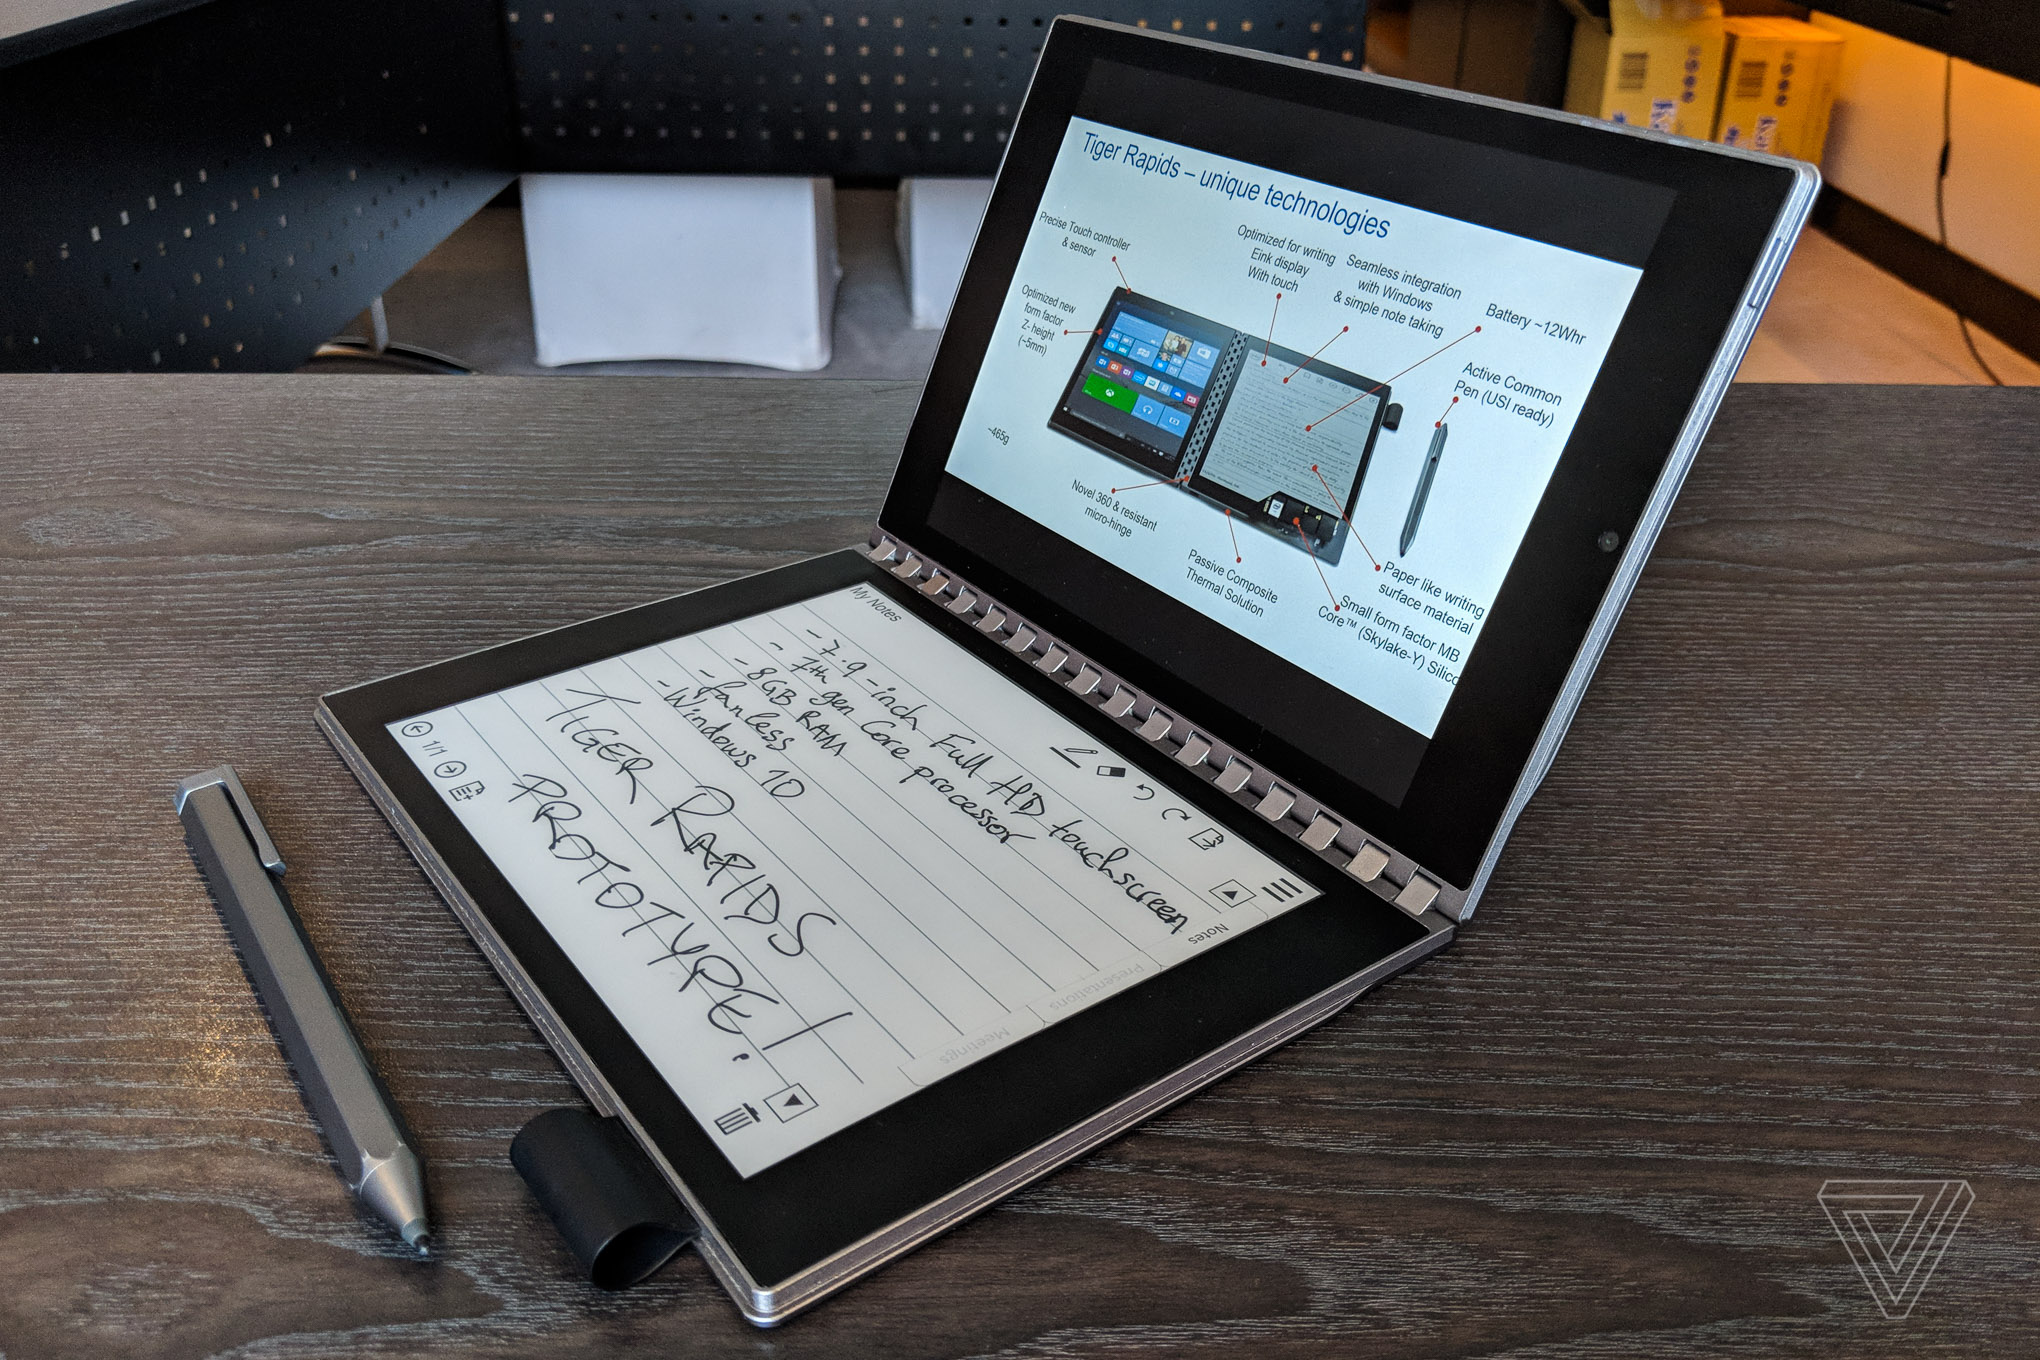 This dual-screen concept splices a Windows PC with an E Ink